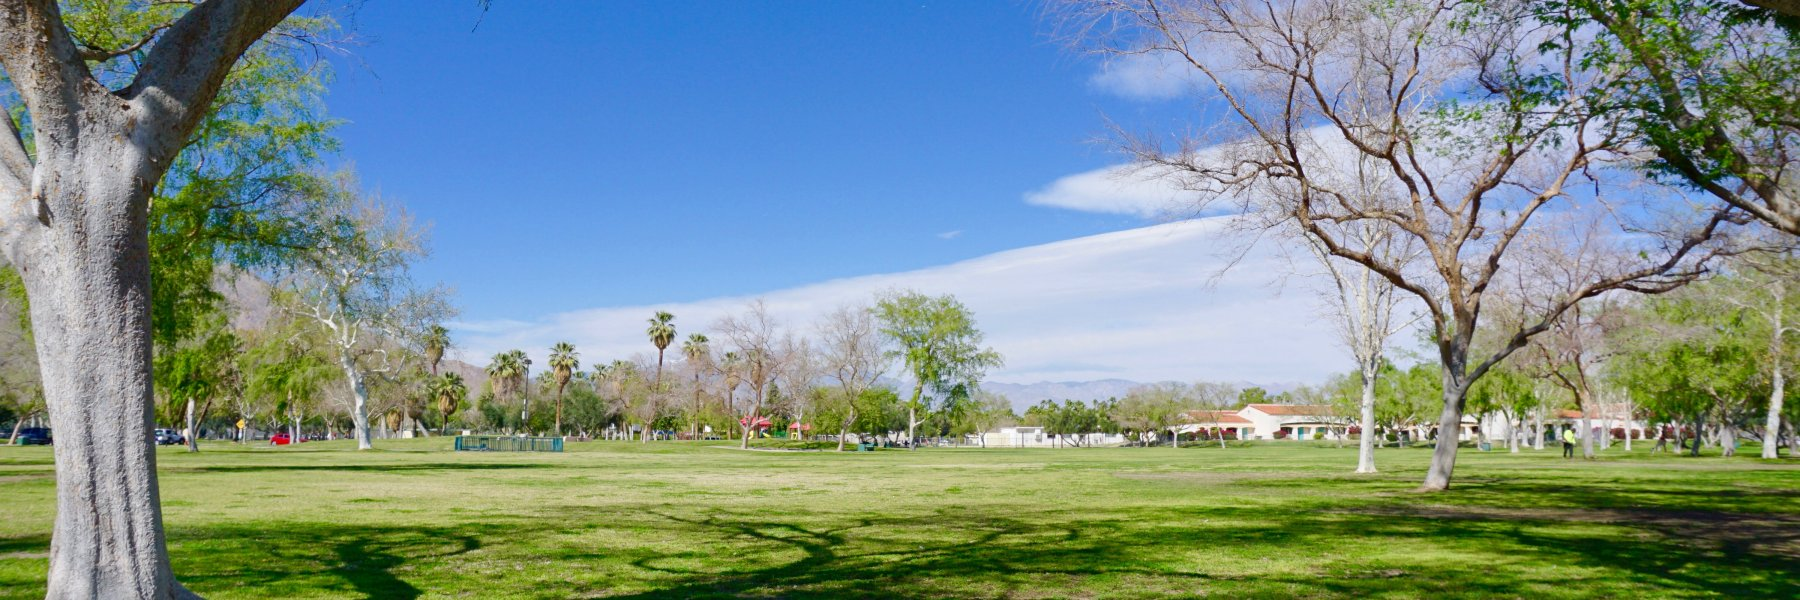 Ruth Hardy Park is a community of homes in Palm Springs California